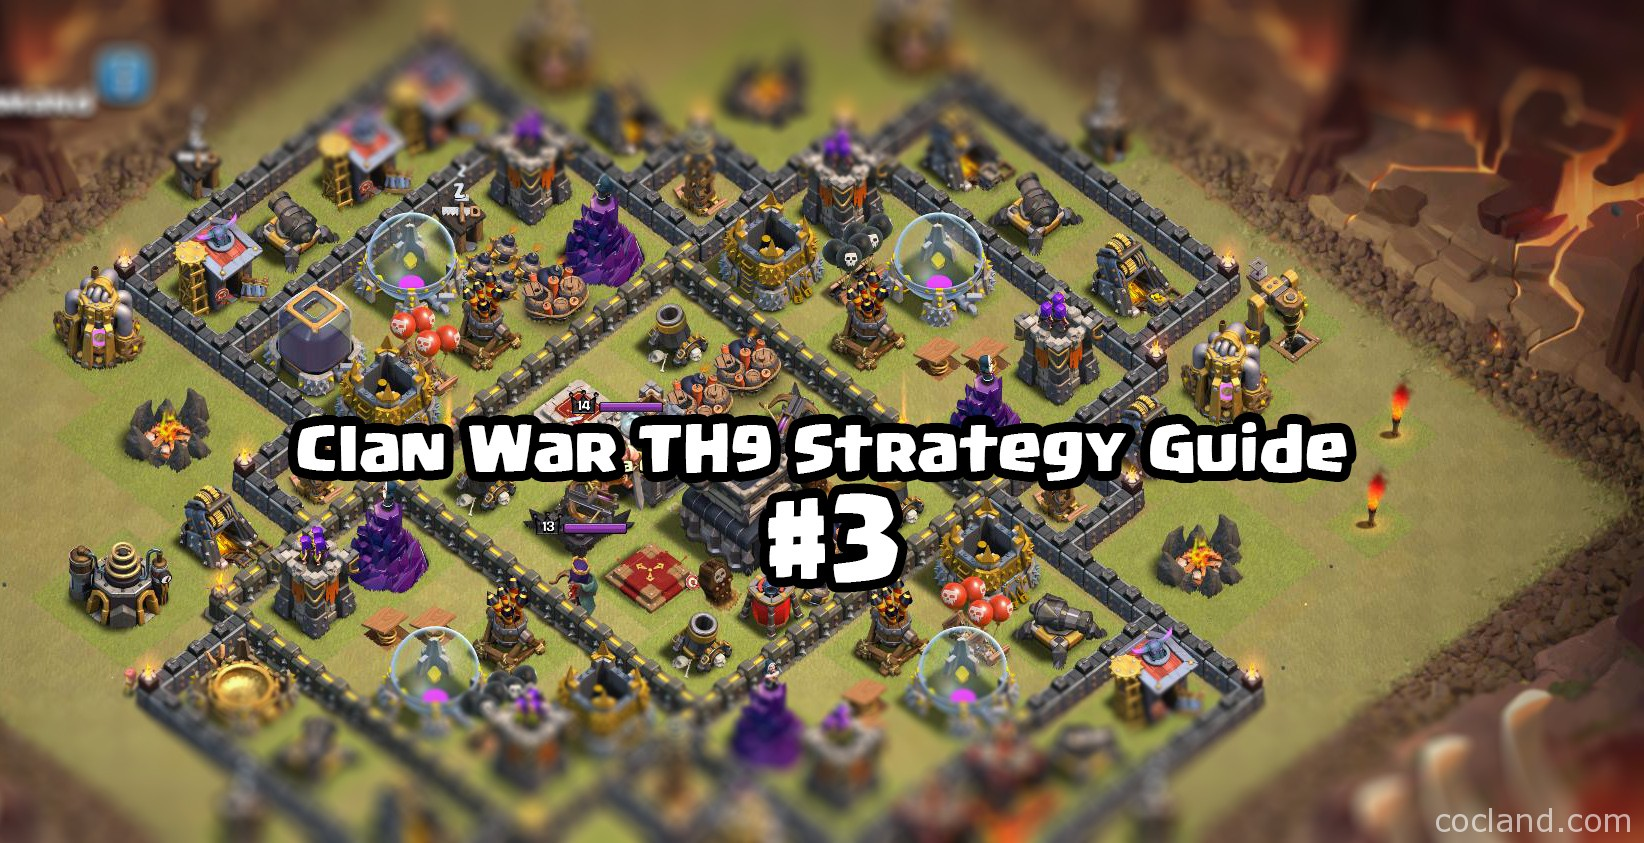 Clan War TH9 Strategy Guide